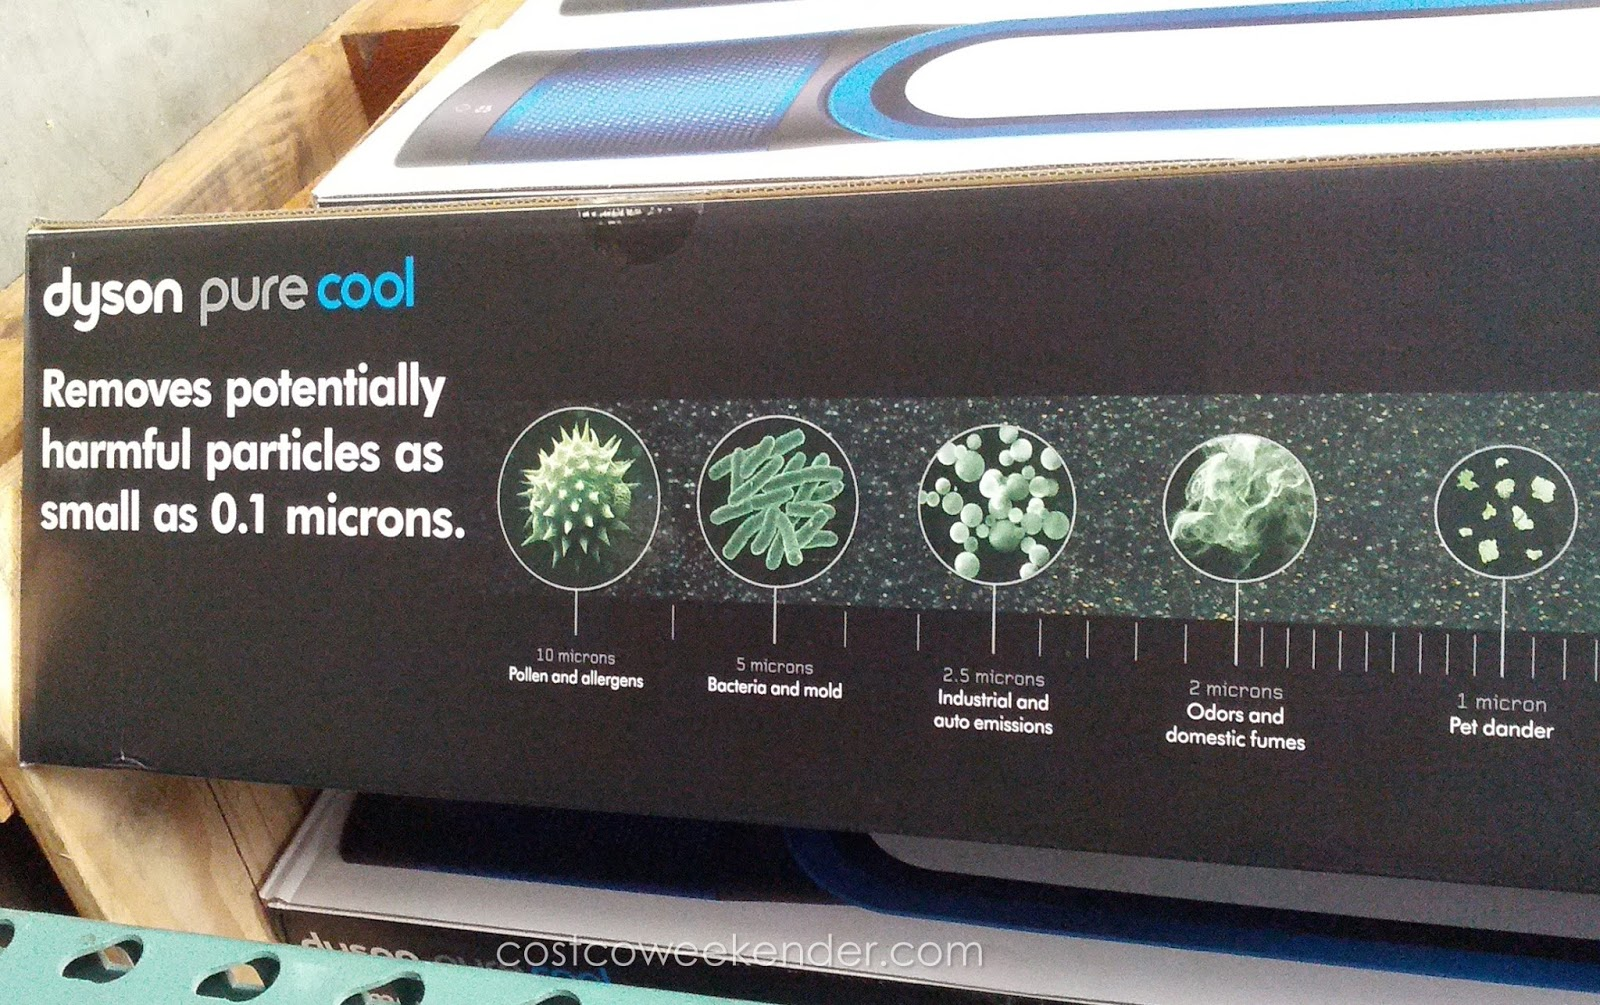 Dyson Am11 Pure Cool Air Purifier Costco Weekender